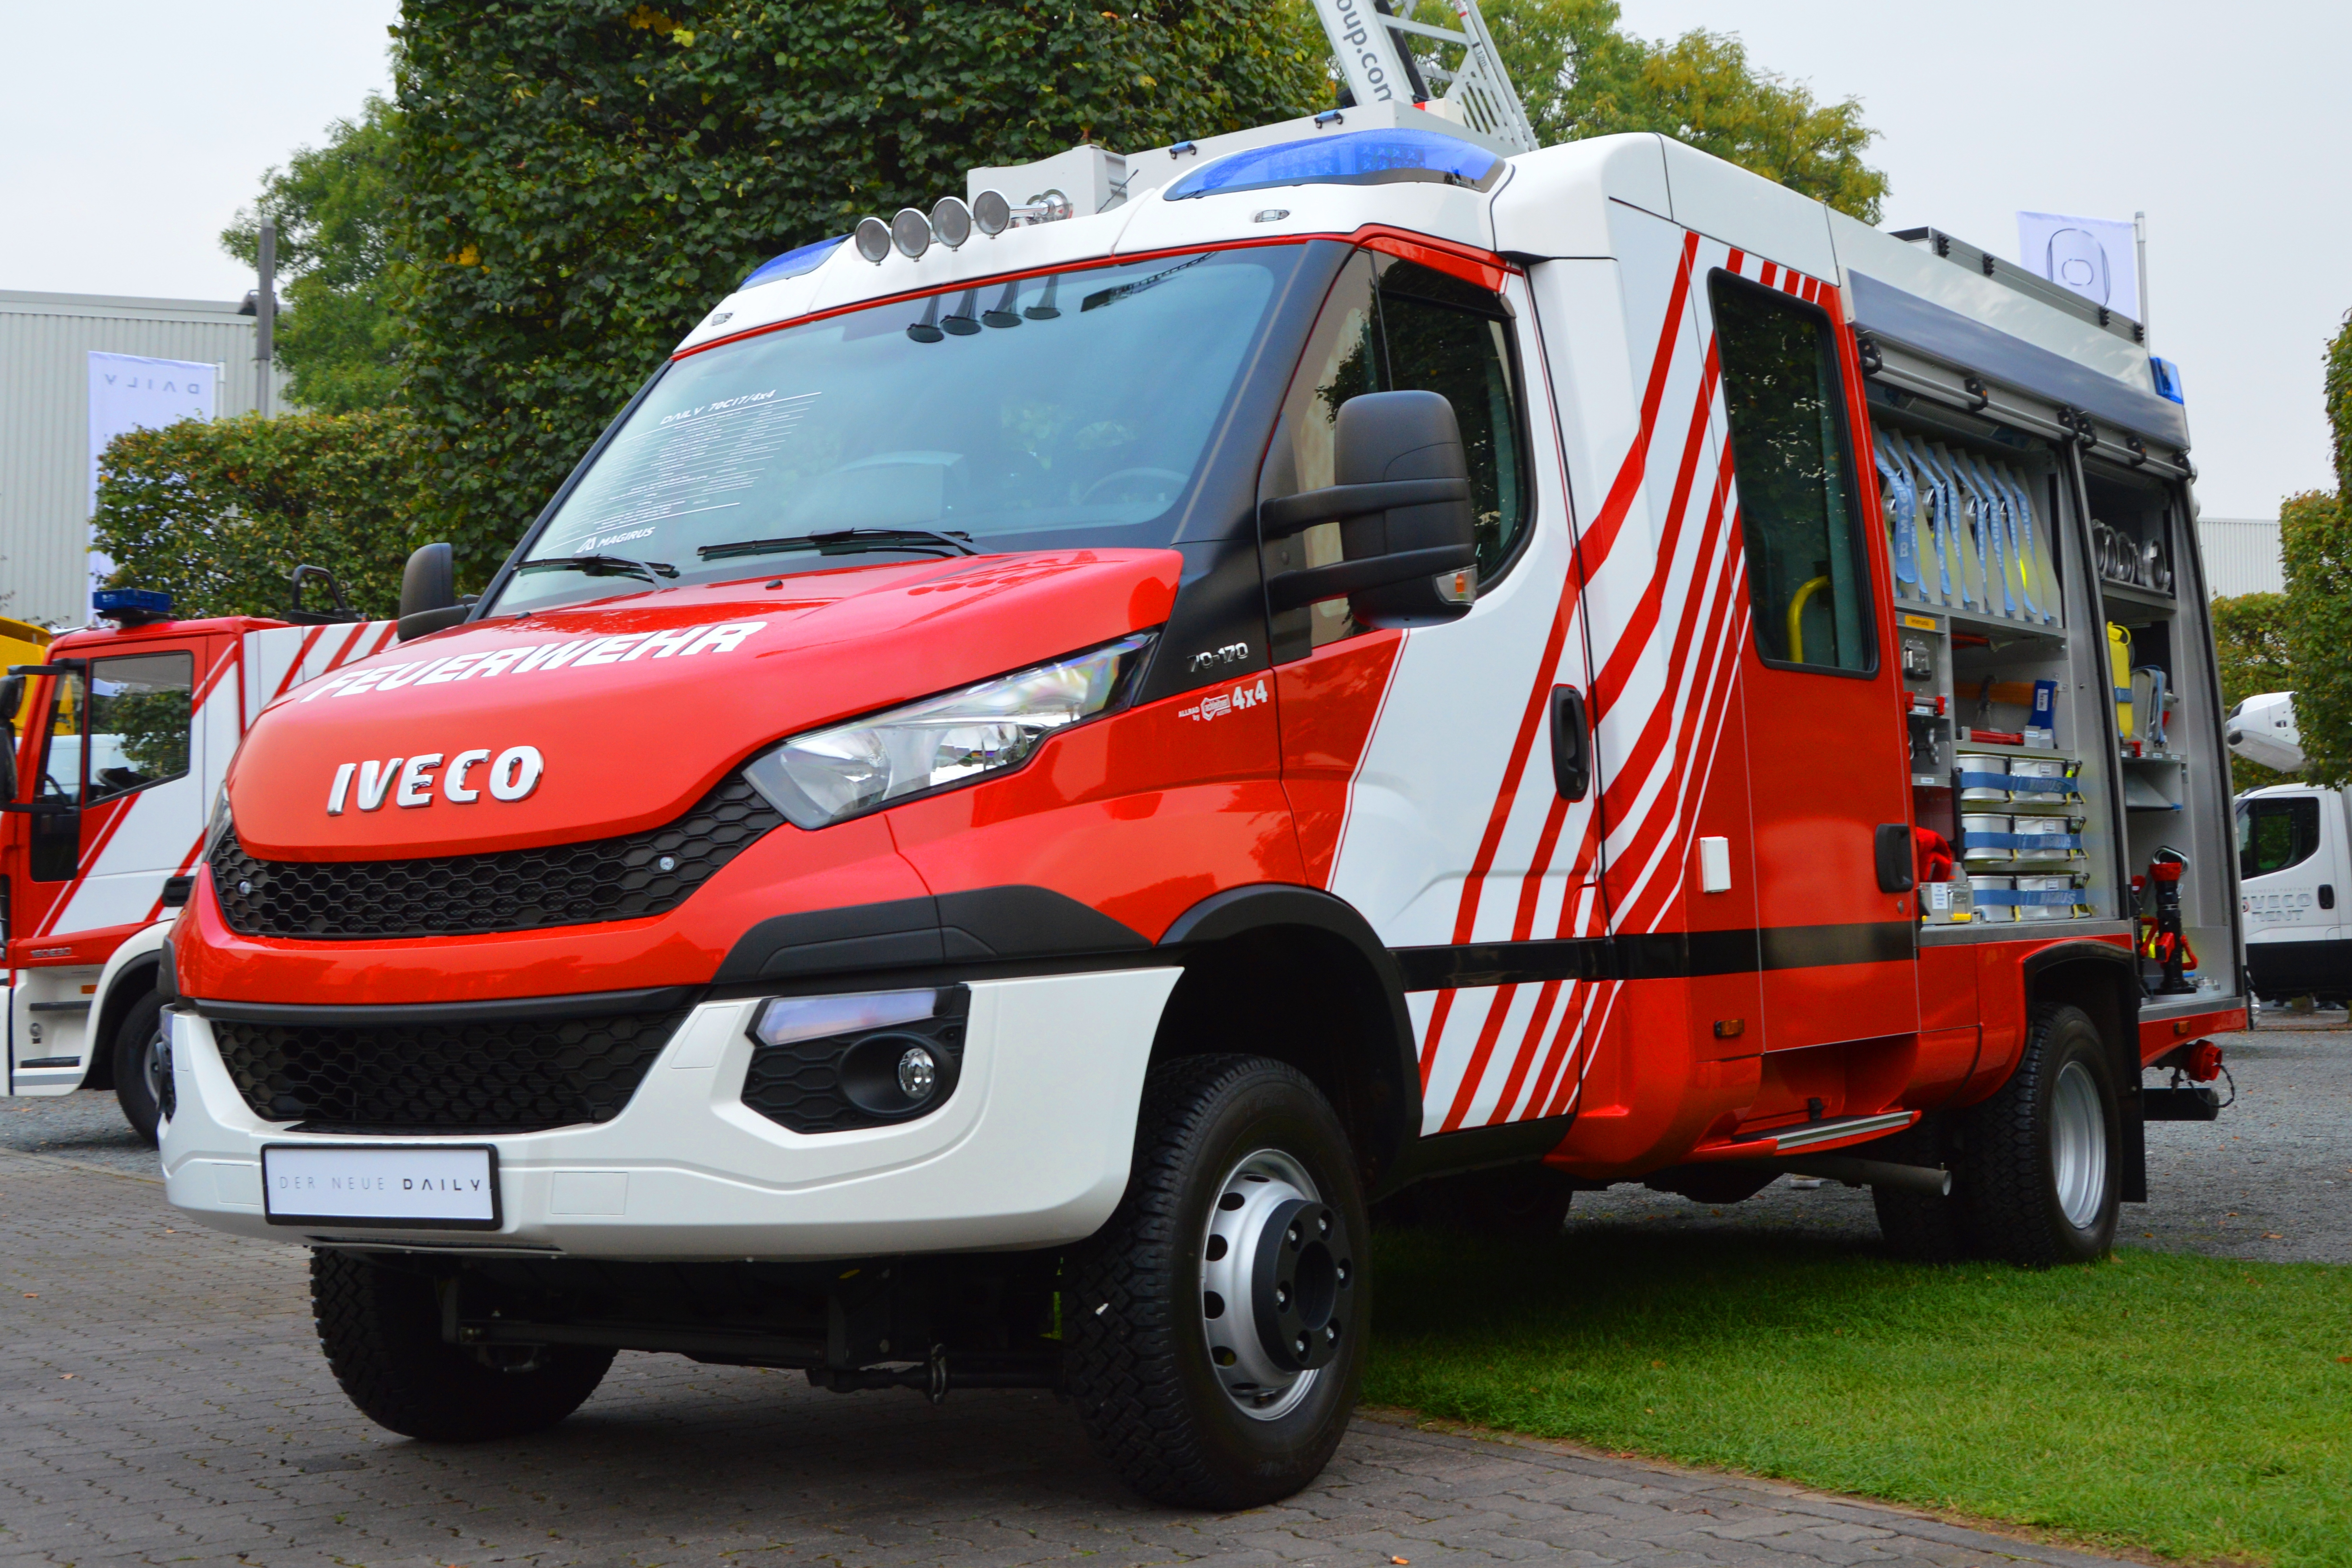 datei iveco daily 2014 fire engine free image spielvogel jpg wikipedia. Black Bedroom Furniture Sets. Home Design Ideas